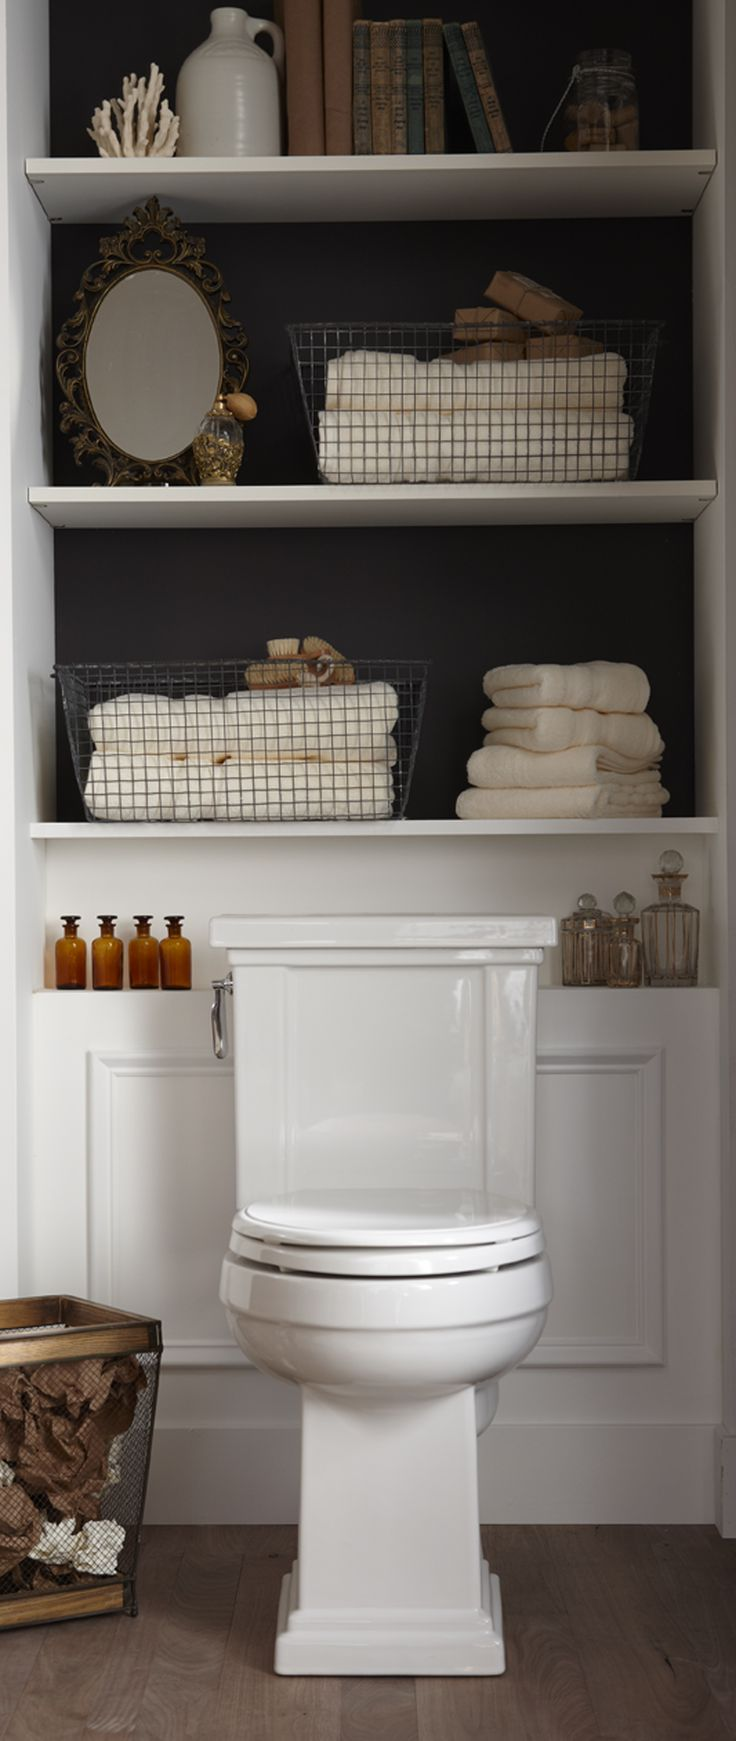 Bathroom wall storage baskets - Ways To Organize Your Bathroom Wire Basketsbaskets For Storagelinen